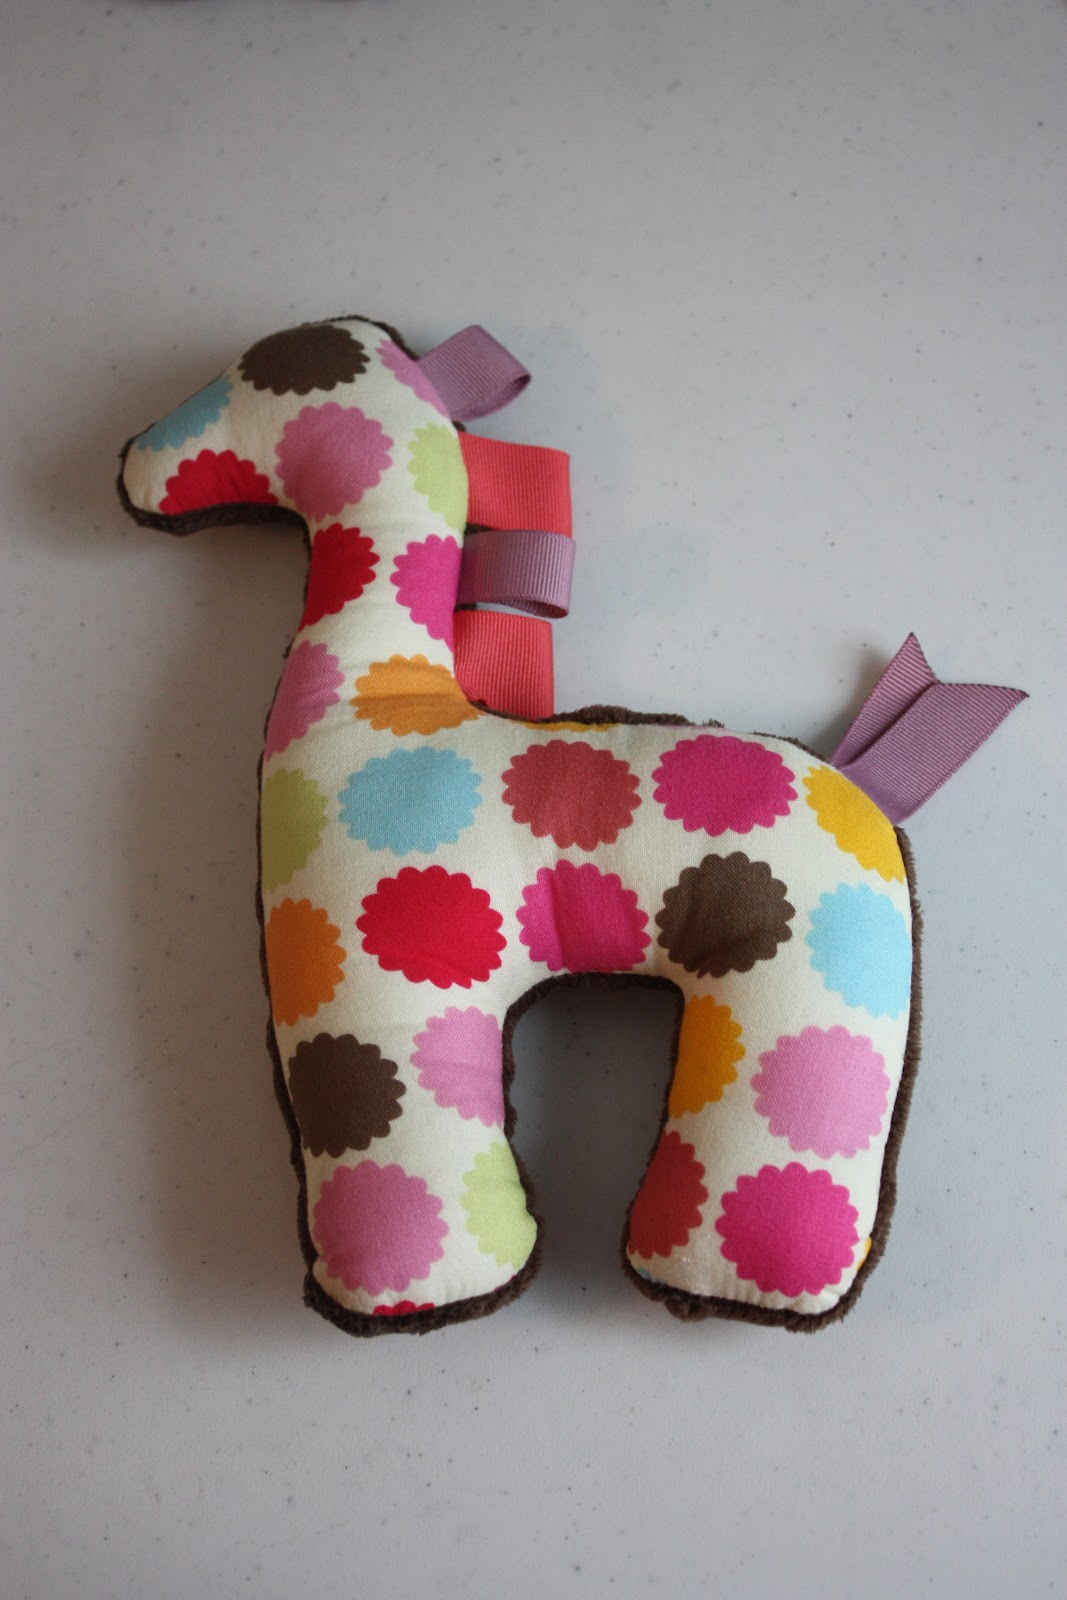 Then I Made This Dino Taggie See Tutorial Here